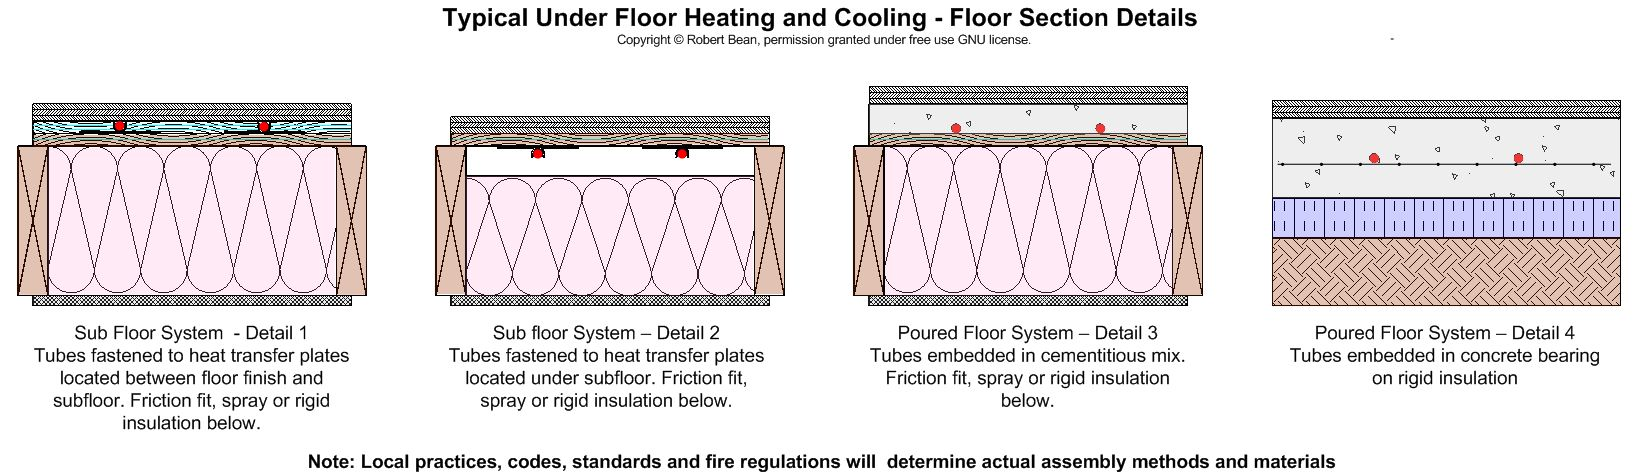 Floor heat concepts Floor heating concepts Pinterest - fit note